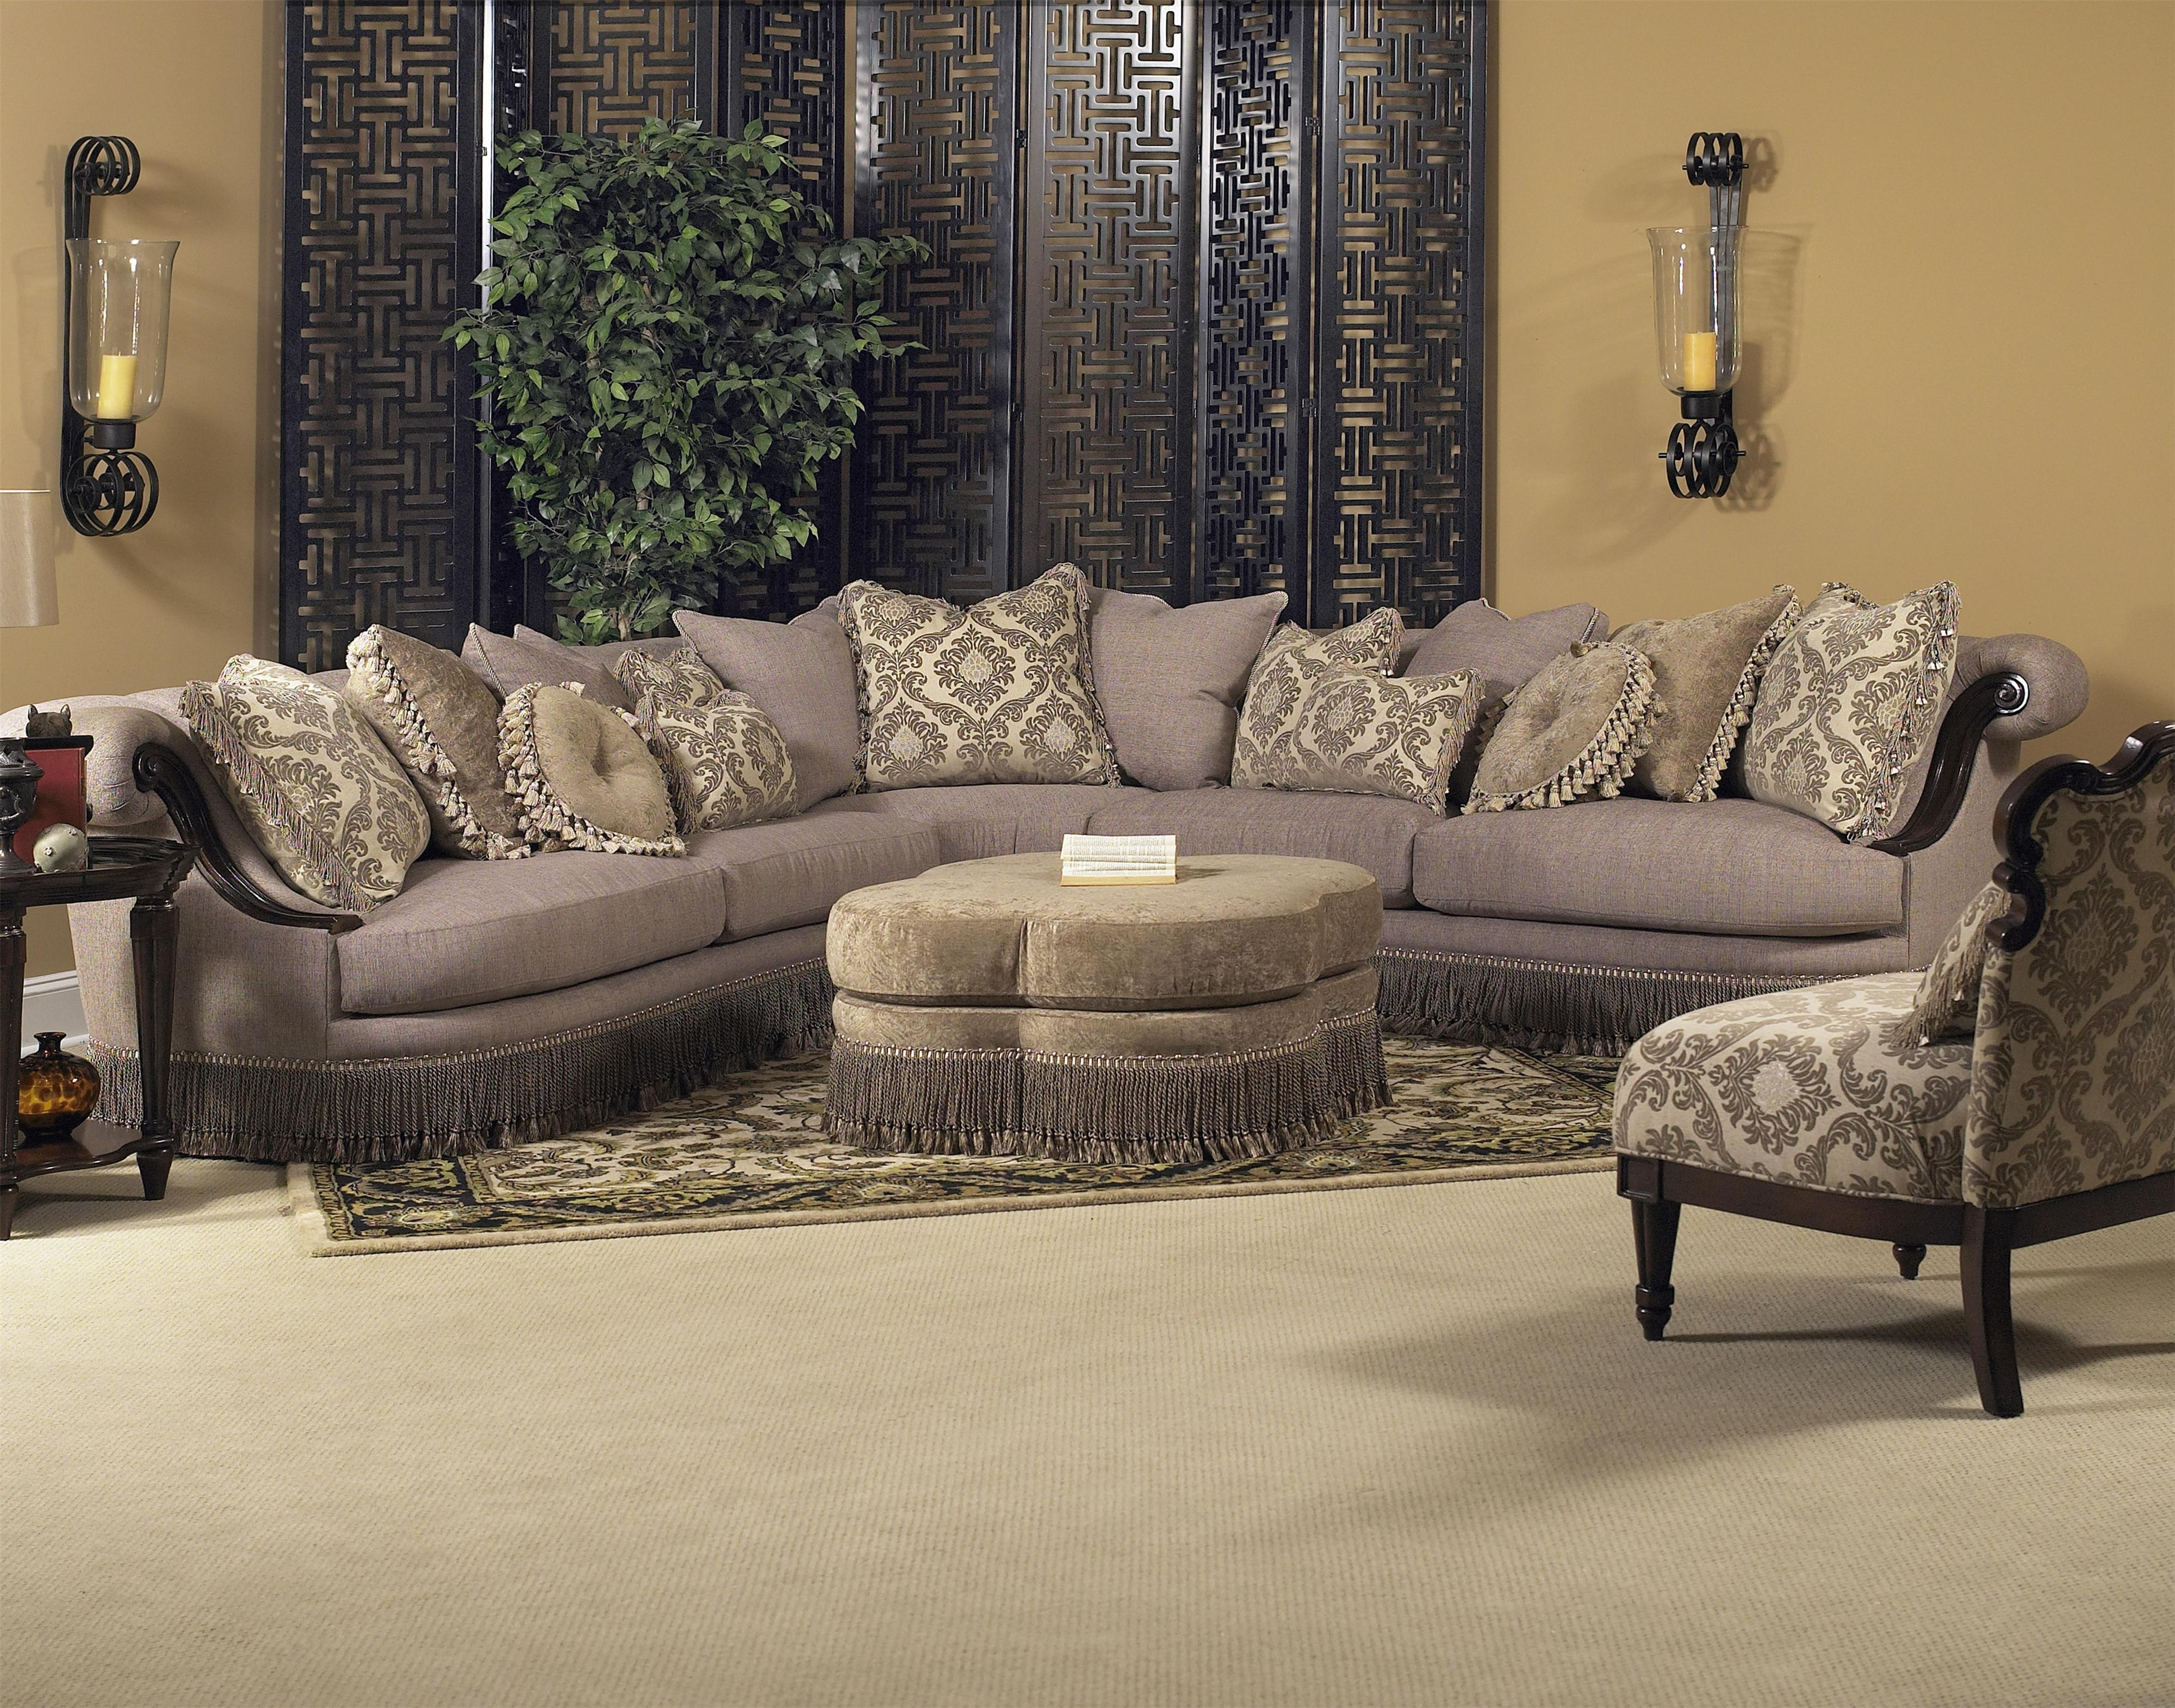 Classic Wellingsley Sectionalfairmont Designs Available At Royal Within Royal Furniture Sectional Sofas (Image 5 of 10)